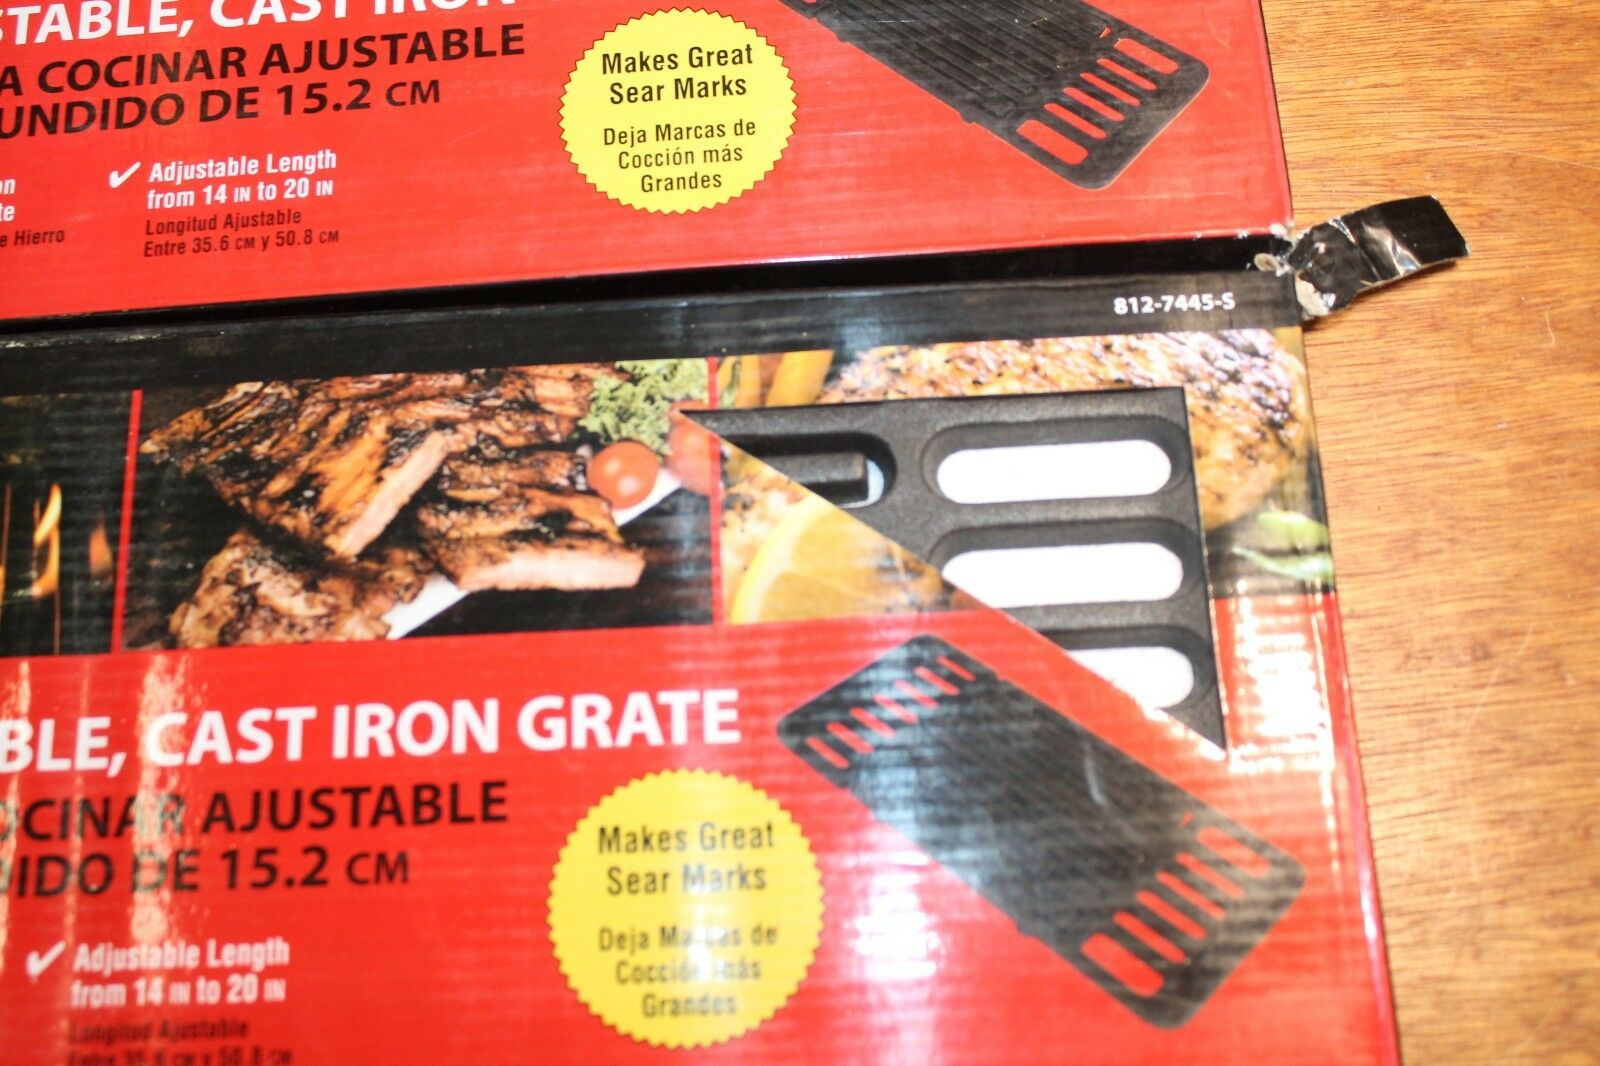 "Brinkmann 812-7445-S Adjustable 6/"" Porcelain-Coated Cast Iron Cooking Grate"